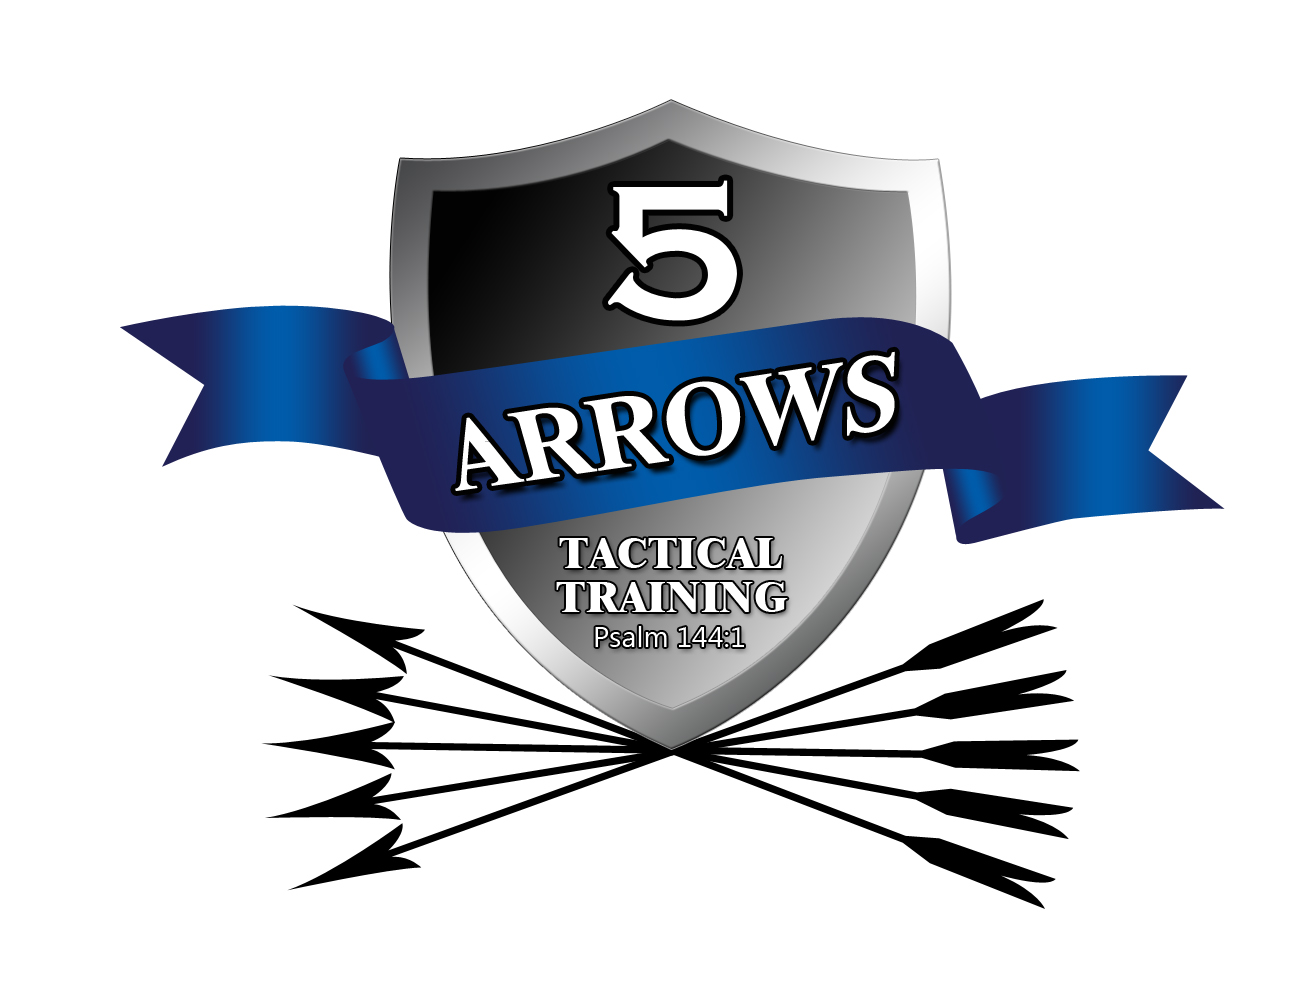 5 Arrows Tactical Training Store